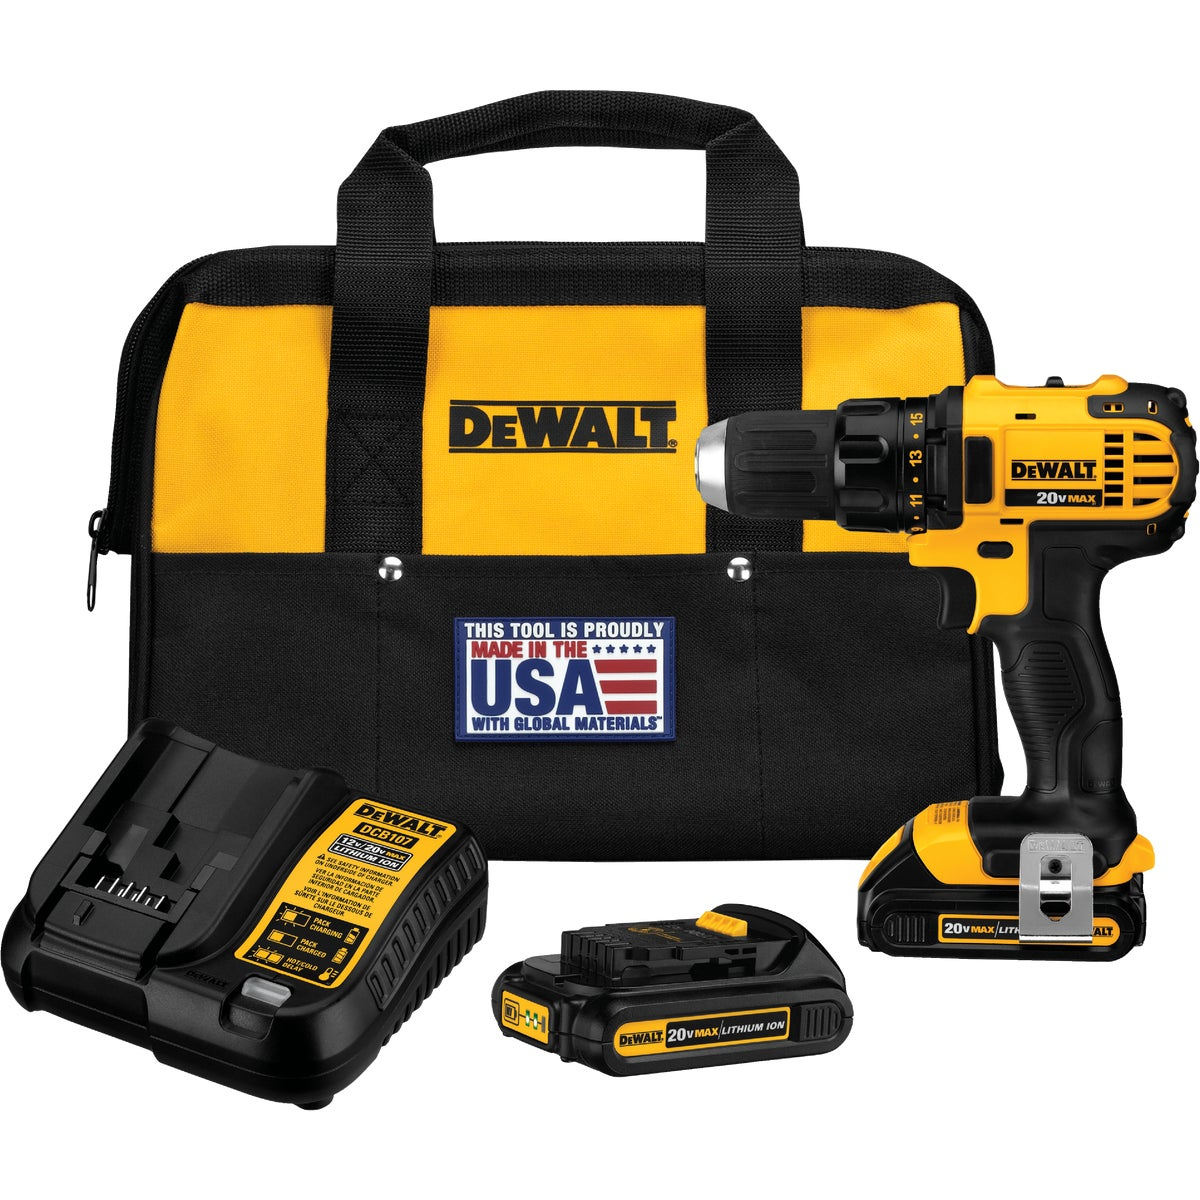 20V DRILL DRIVER KIT - DCD780C2 by DeWalt